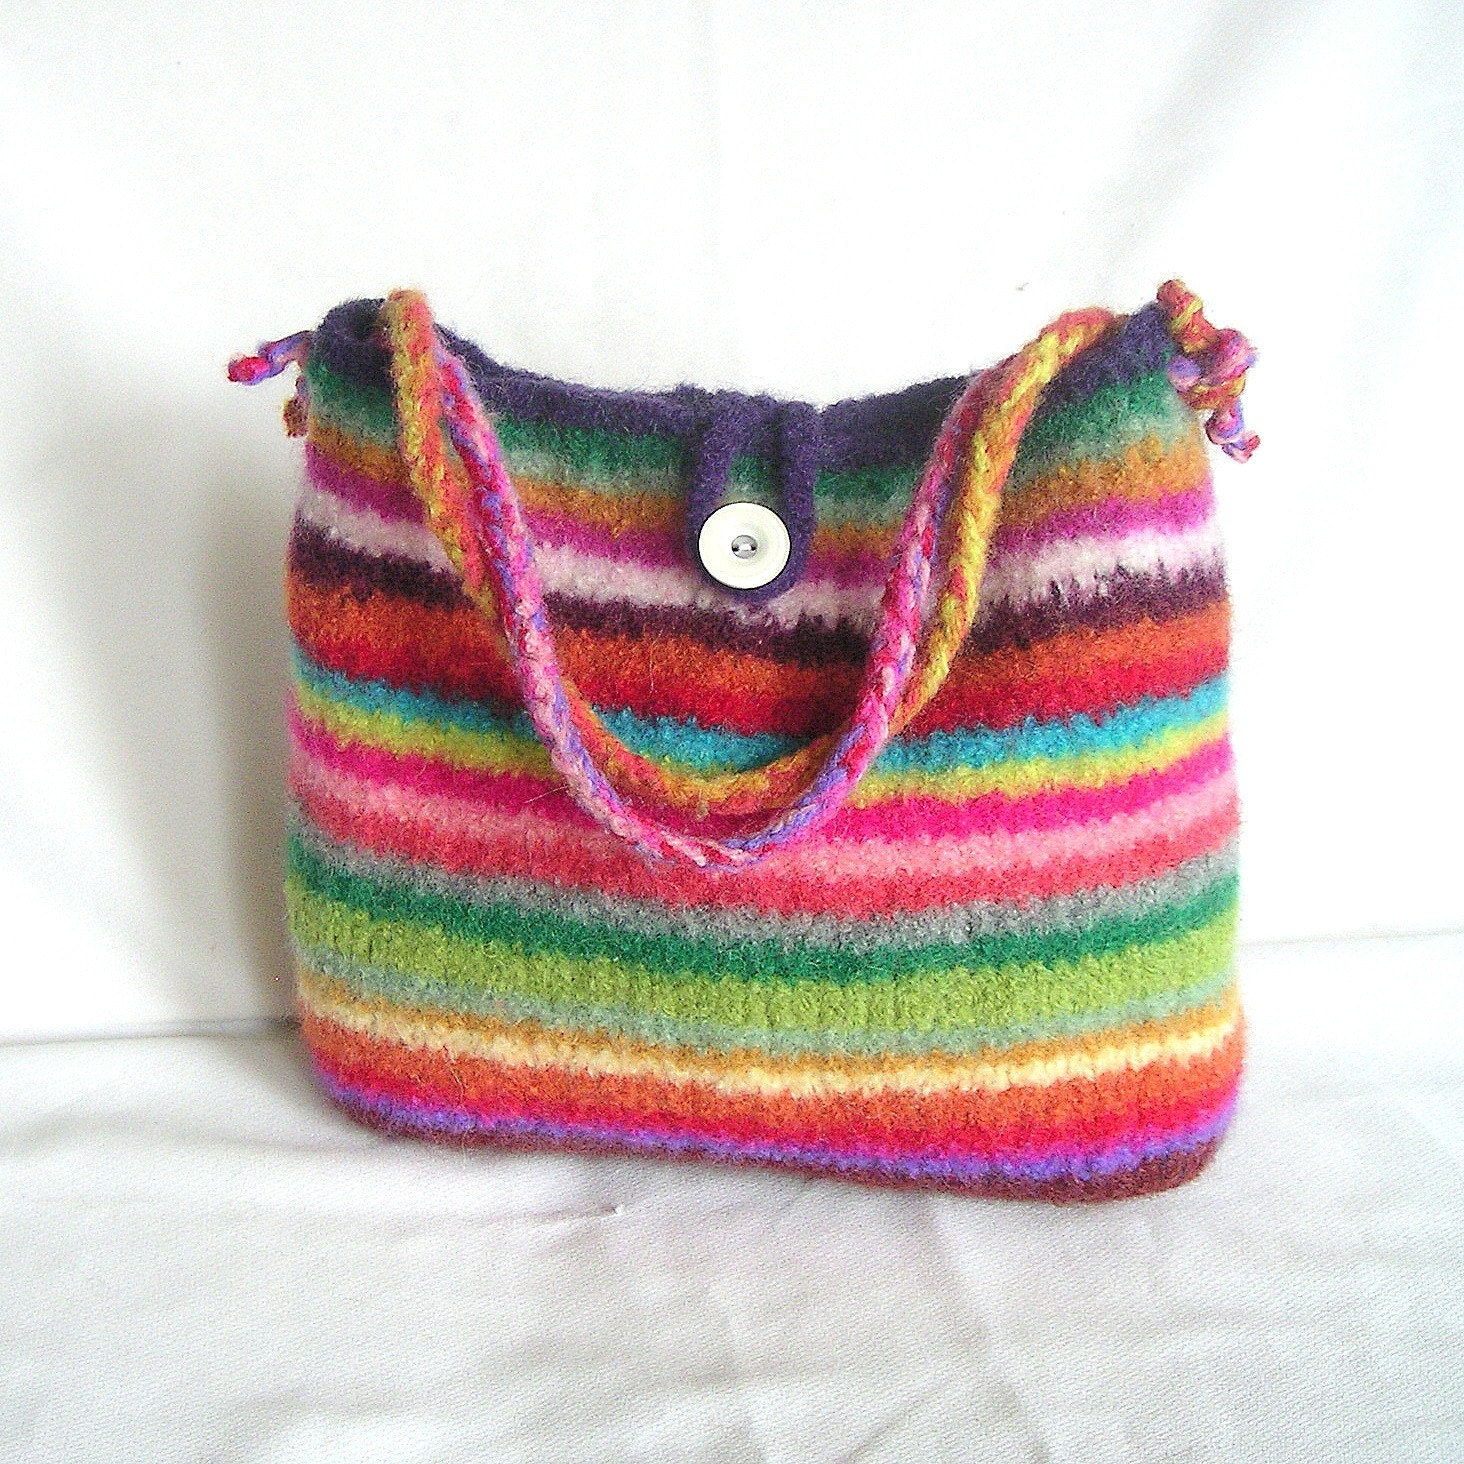 Knitting Pattern Felted Bag : Items similar to Easy Knit Bag Pattern Tutorial pdf, Rainbow Felted Bag Knitt...